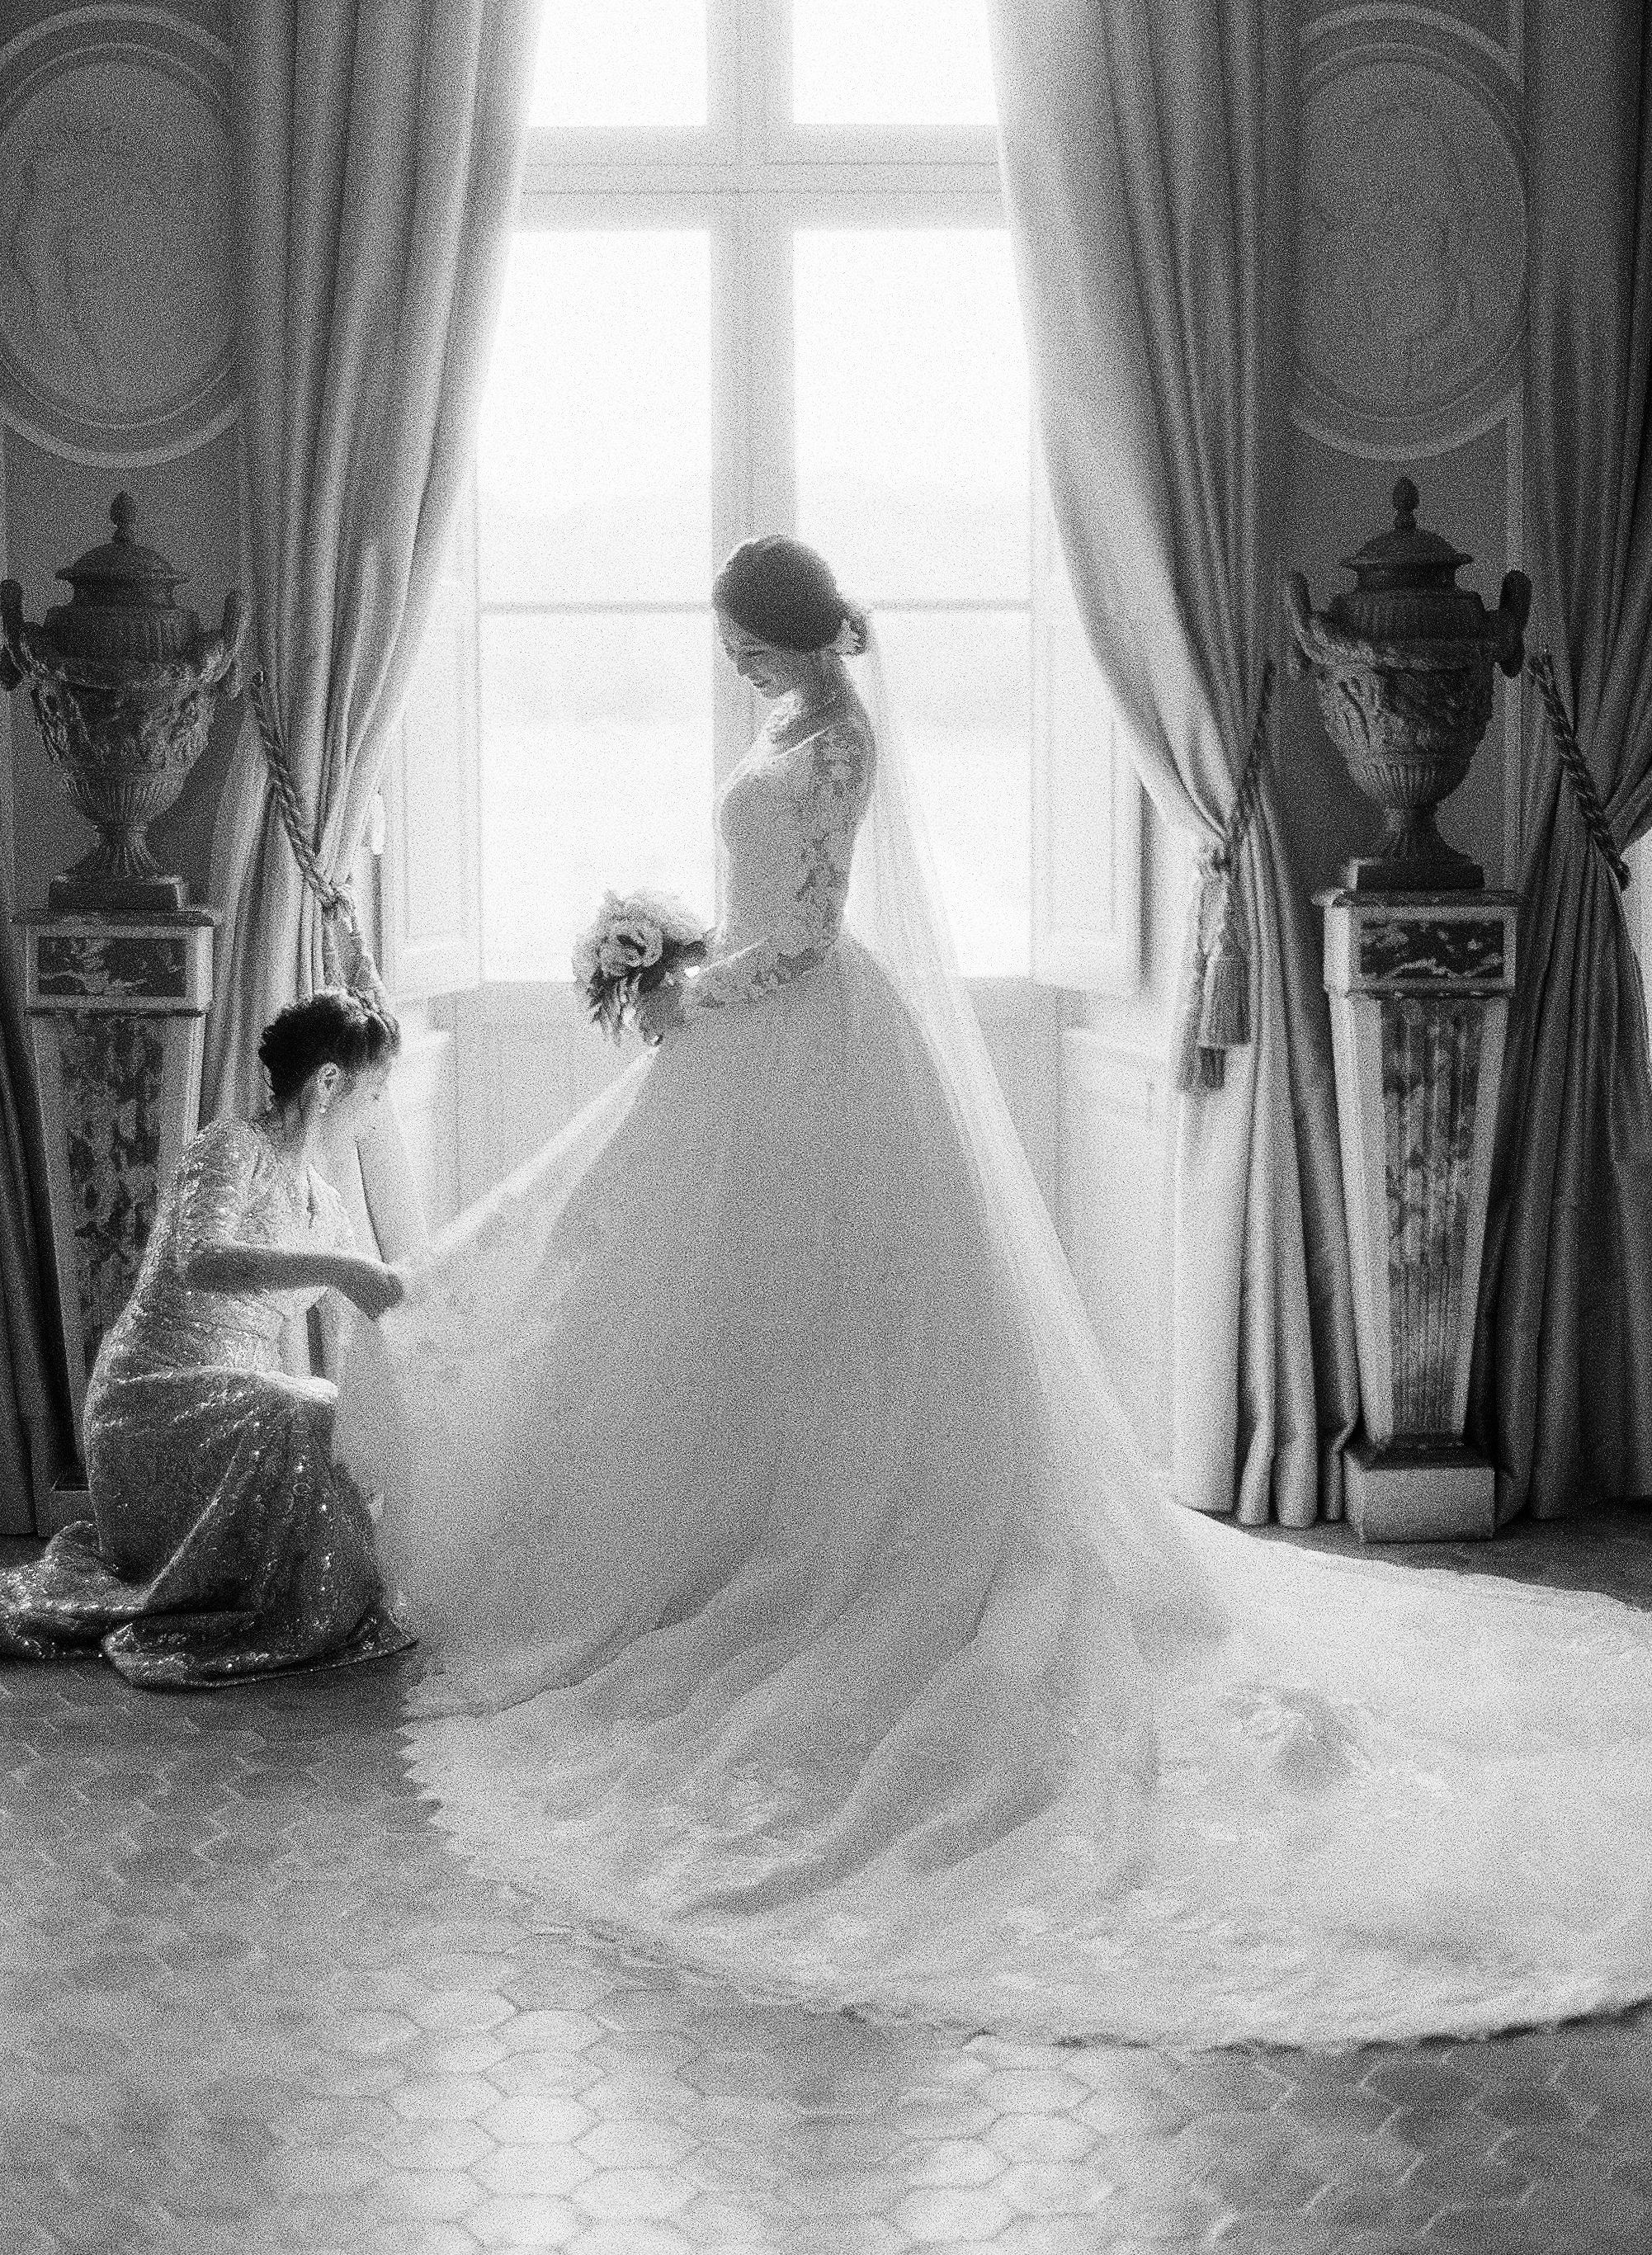 janet patrick wedding bride getting ready in front of window